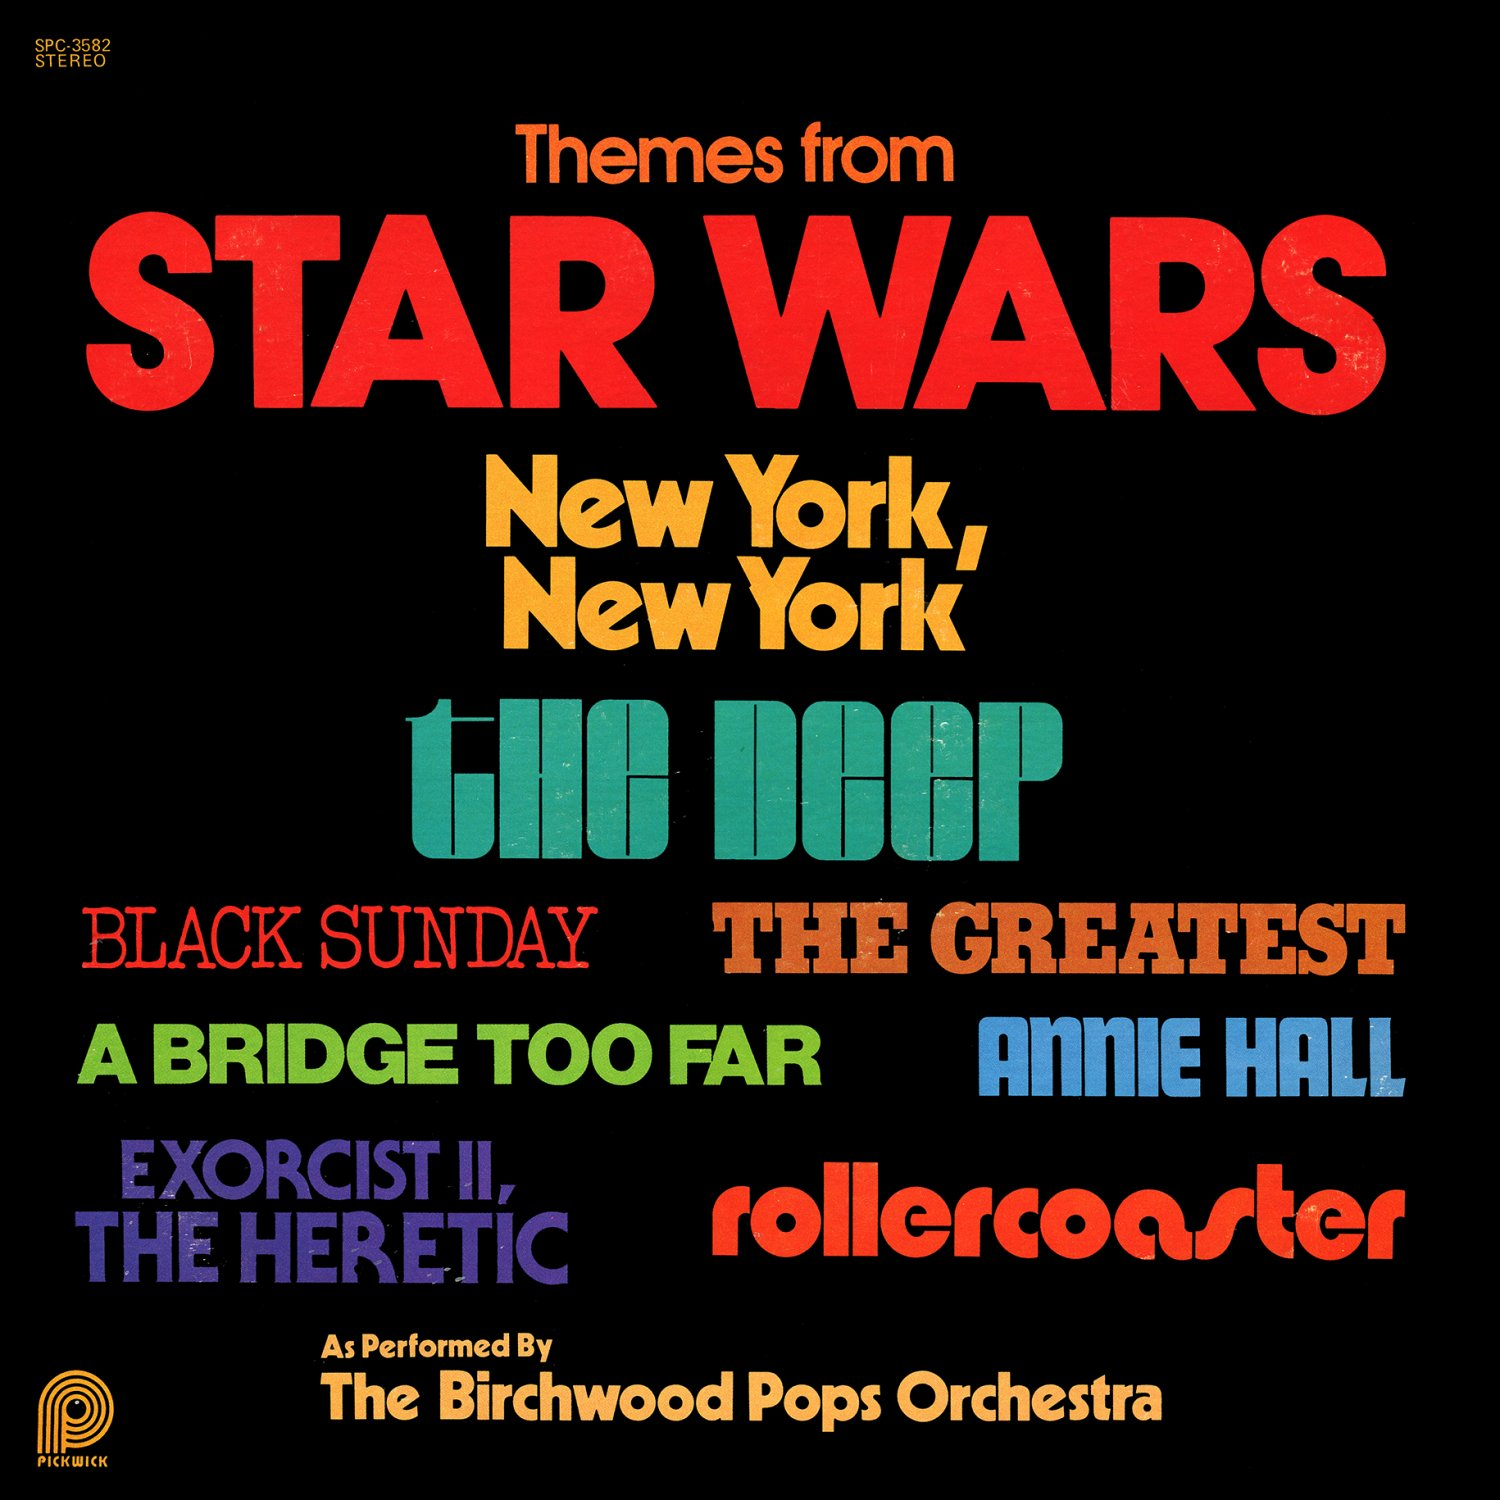 Themes from Star Wars/The Deep/Rollercoaster - Soundtrack Collection, Birchwood Pops LP/CD